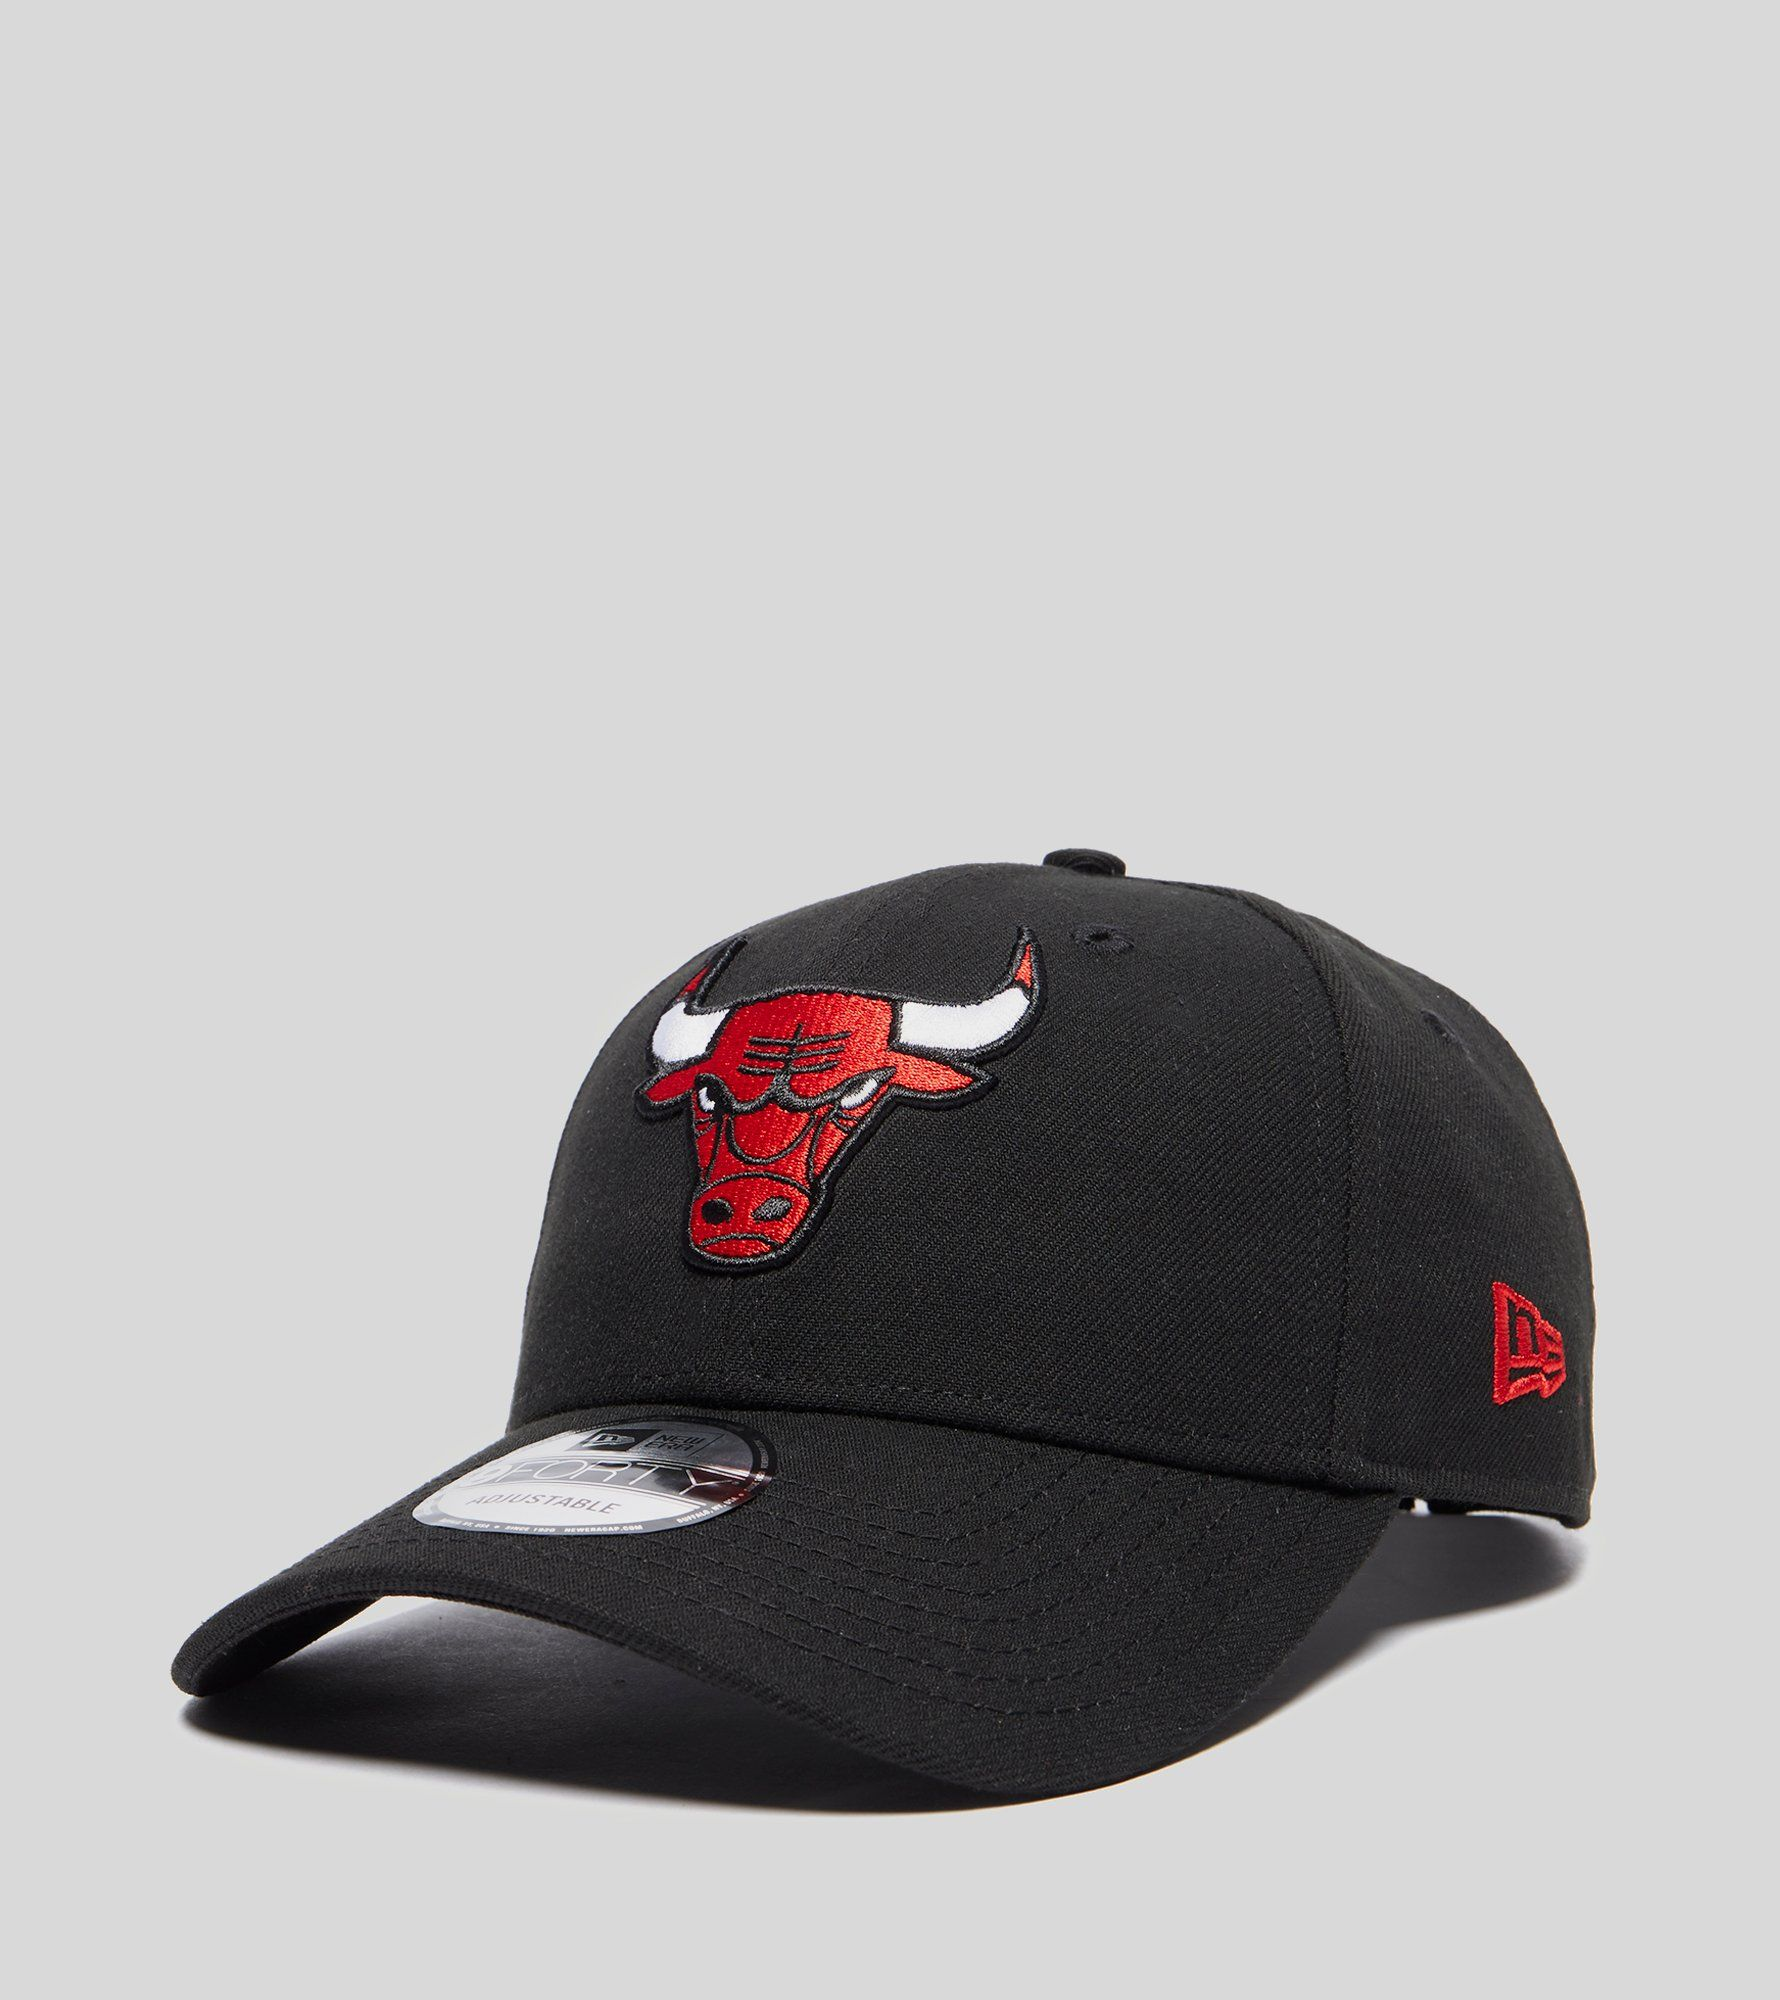 New Era 9FORTY Chicago Bulls Cap